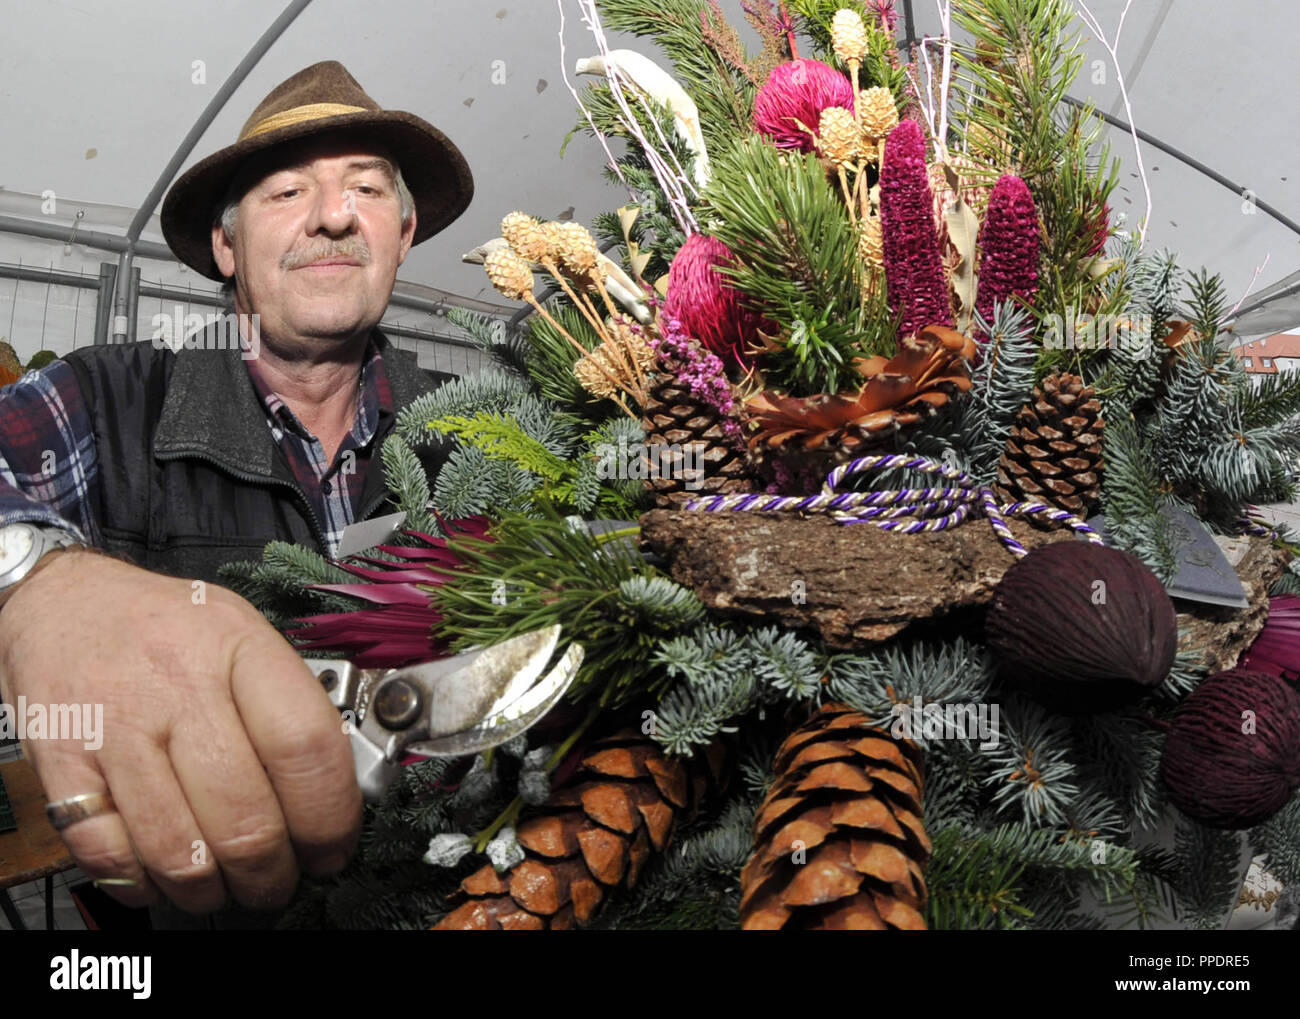 "Johann Raab from the family business ""Blumen und Grabpflege Franziska Raab"" from Perlach makes a floral arrangement as grave decoration for All Saints' Day. Stock Photo"